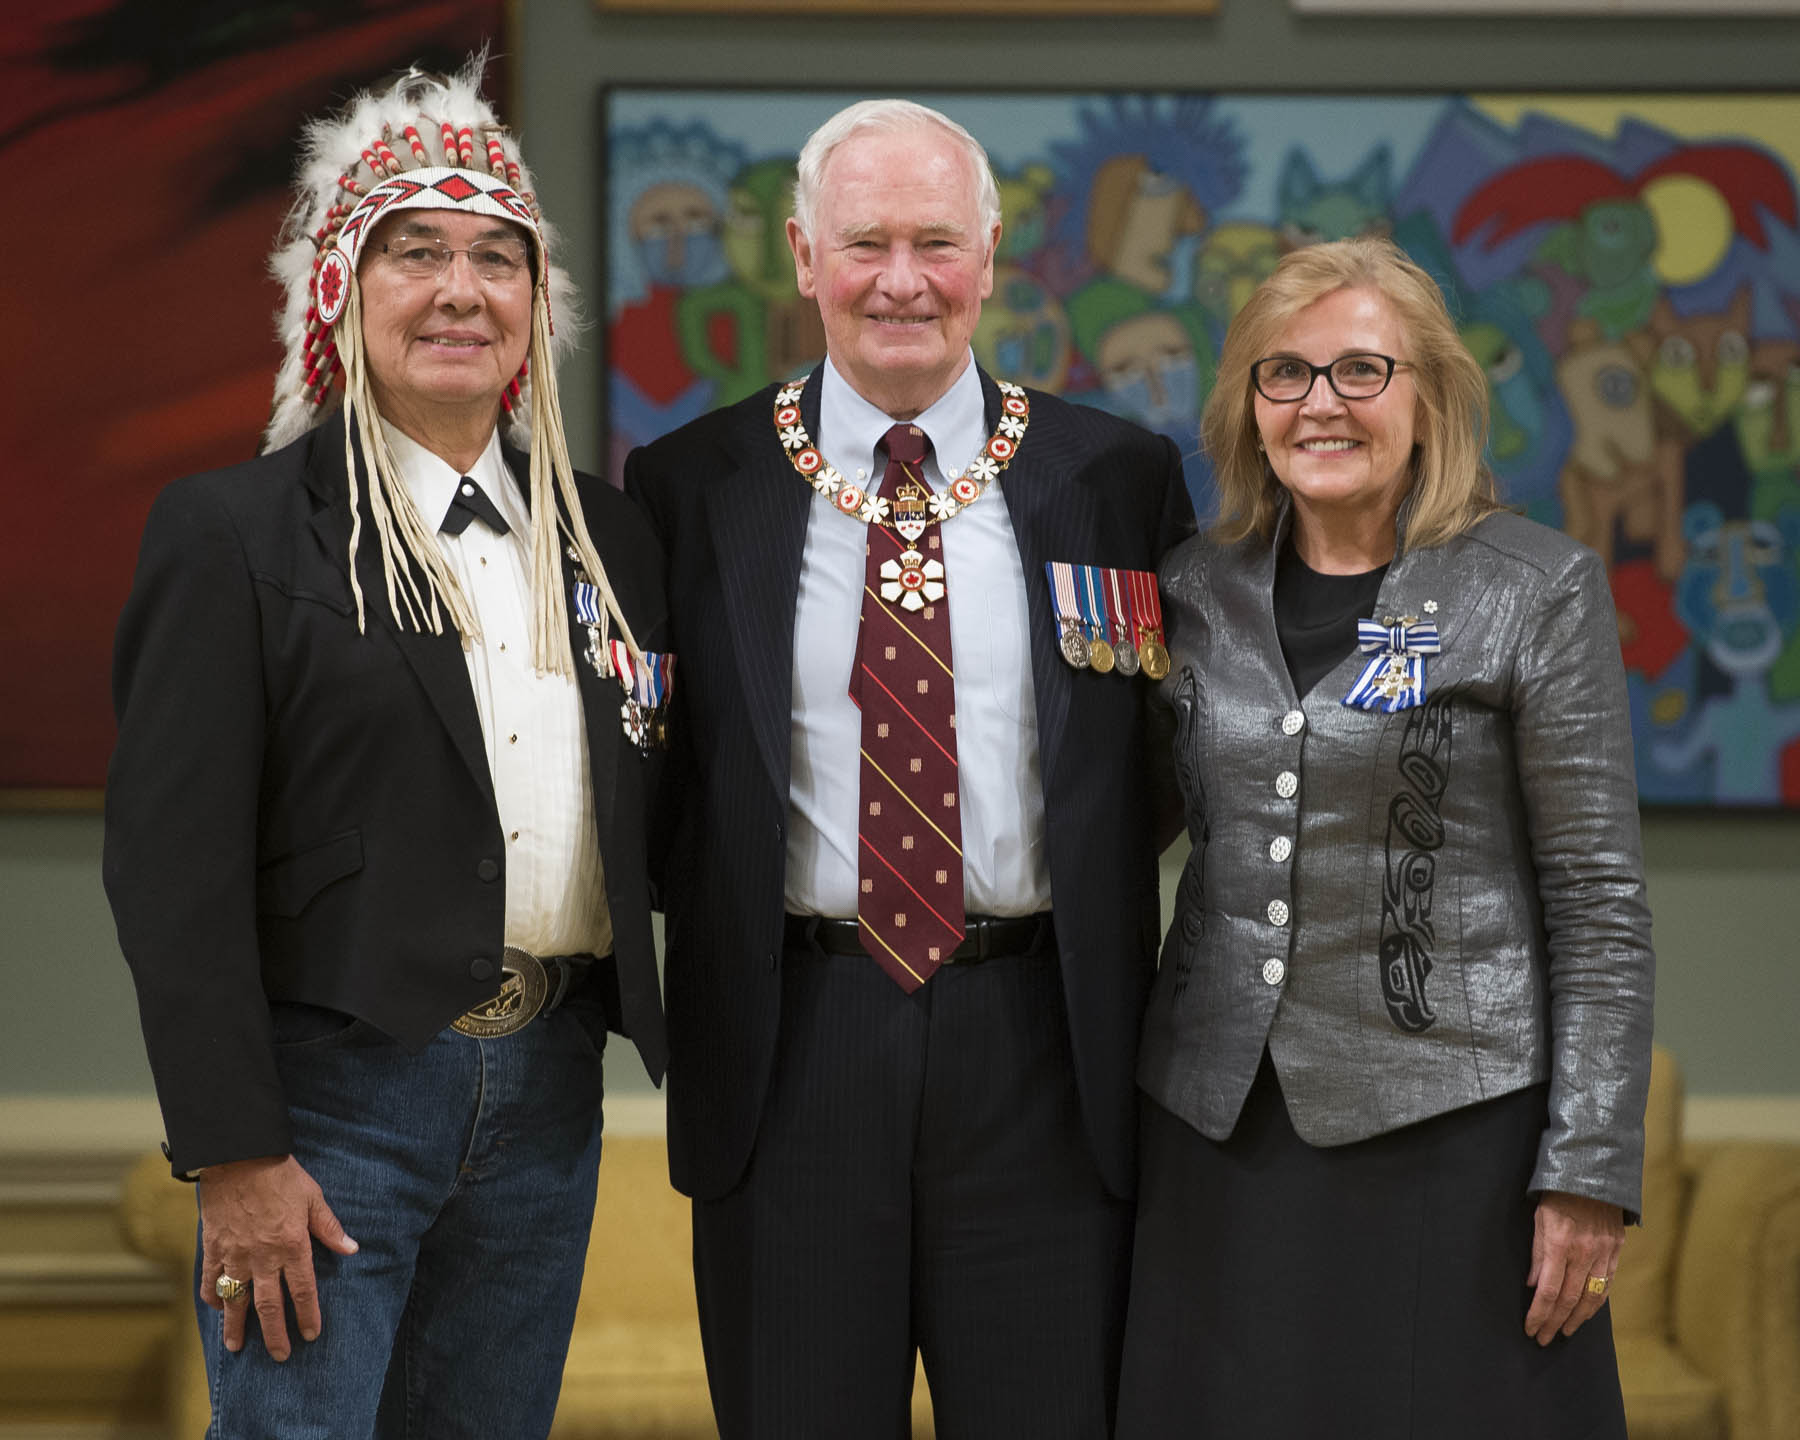 Chief Wilton Littlechild and Marie Wilson received the Meritorious Service Cross (Civil Division). Justice Murray Sinclair, Chief Wilton Littlechild and Marie Wilson shouldered the responsibility for the Truth and Reconciliation Commission of Canada with fortitude, compassion and perseverance. Over six years, they led the examination of the Indian Residential School system, combing through myriad documents and witnessing the courage of survivors who shared their stories. Their final report invites all Canadians to confront the inequities of the past, and calls on governments and individuals alike to move forward, with greater understanding, towards reconciliation. The Meritorious Service Cross awarded to the Honourable Murray Sinclair will be presented to him at a later date.